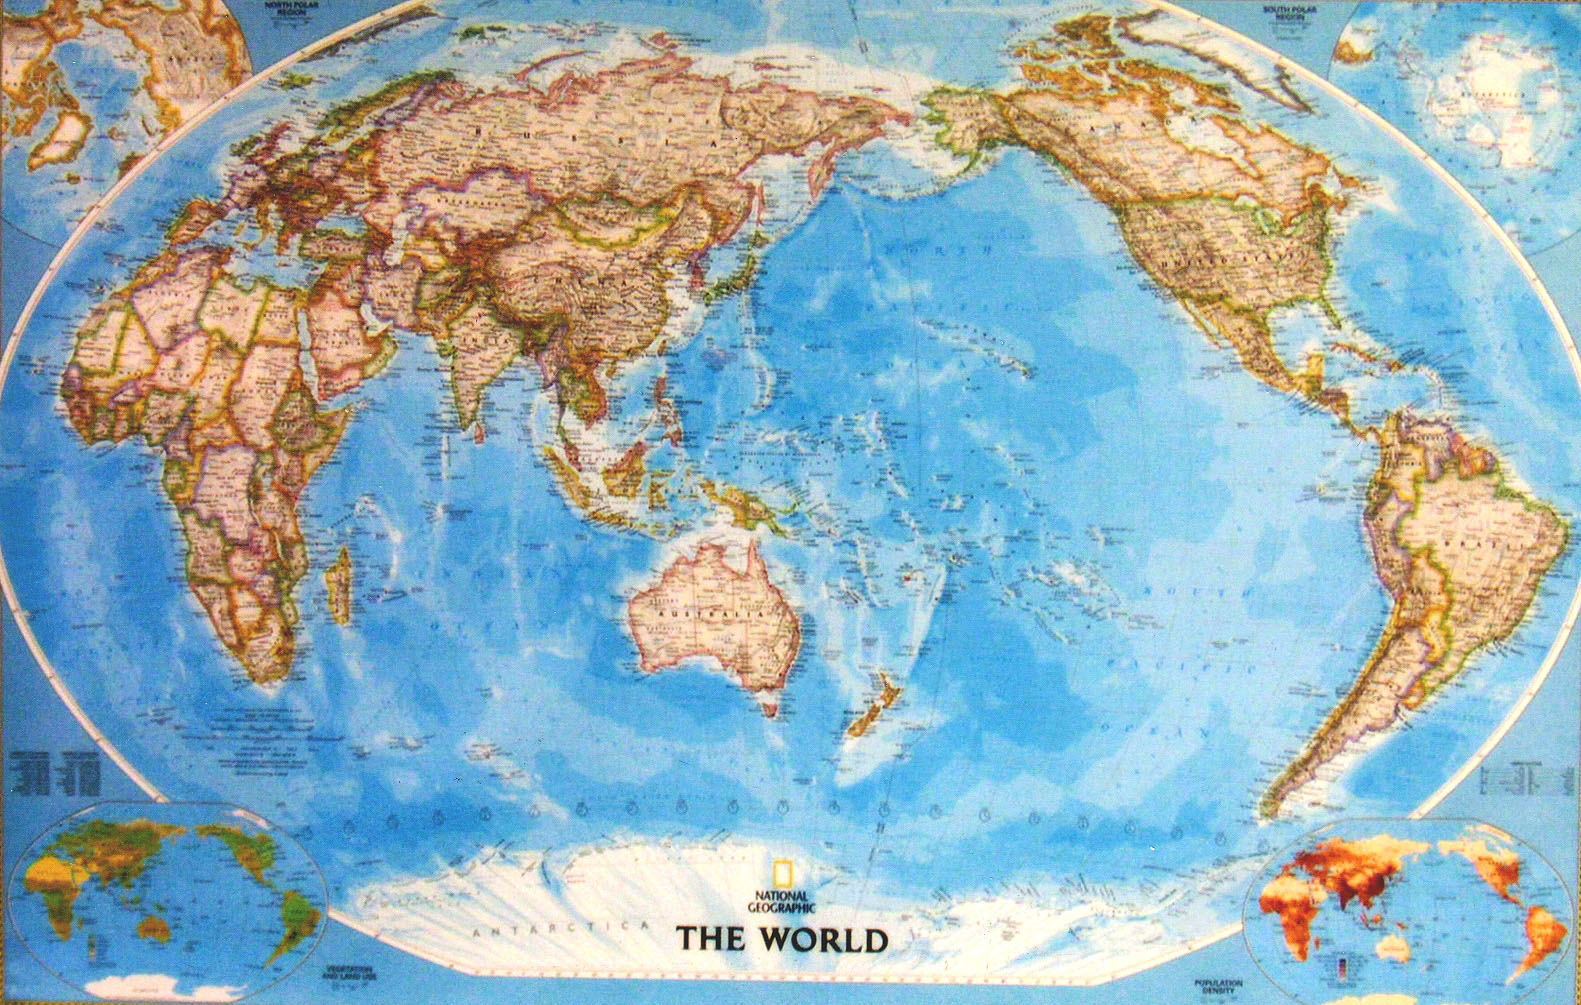 Mapco trading products services laminated hema nat geo world map classic pacific centre size 46x 30 retails price s4200 wgst gumiabroncs